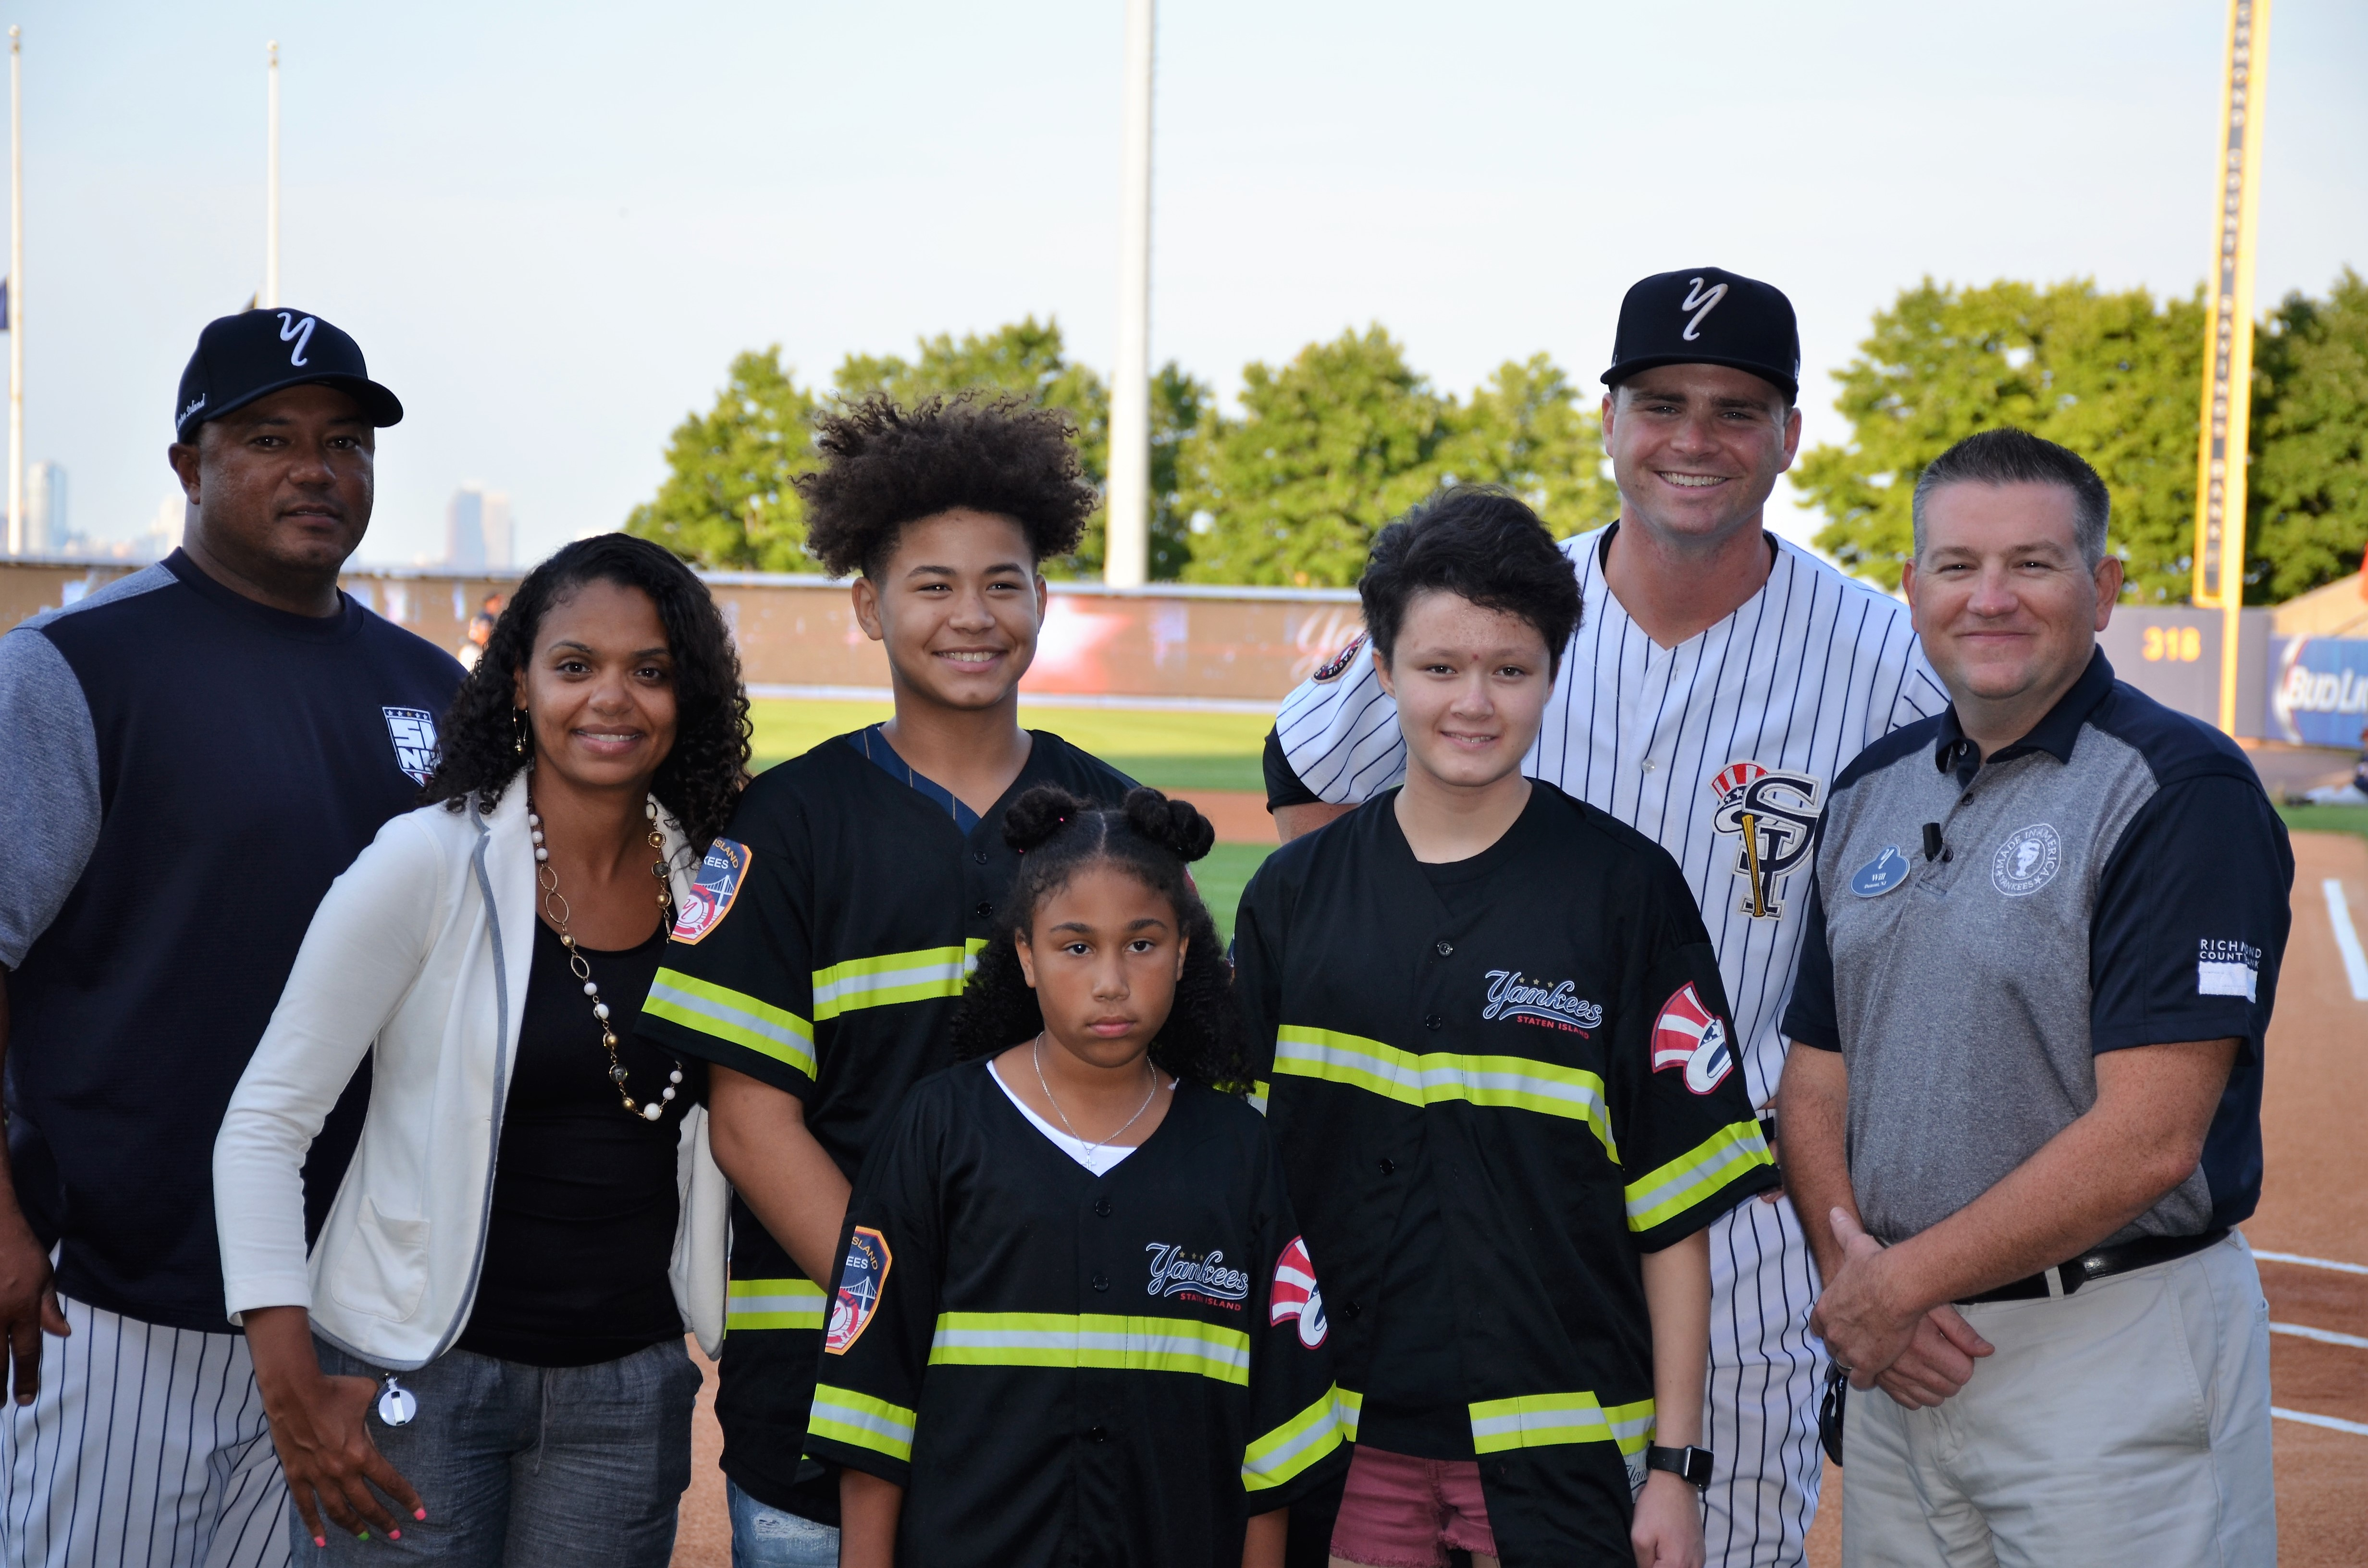 Staten Island Yankees/Con Edison Kids are celebrated for their accomplishments during a ceremony at the Richmond County Bank Ballpark.